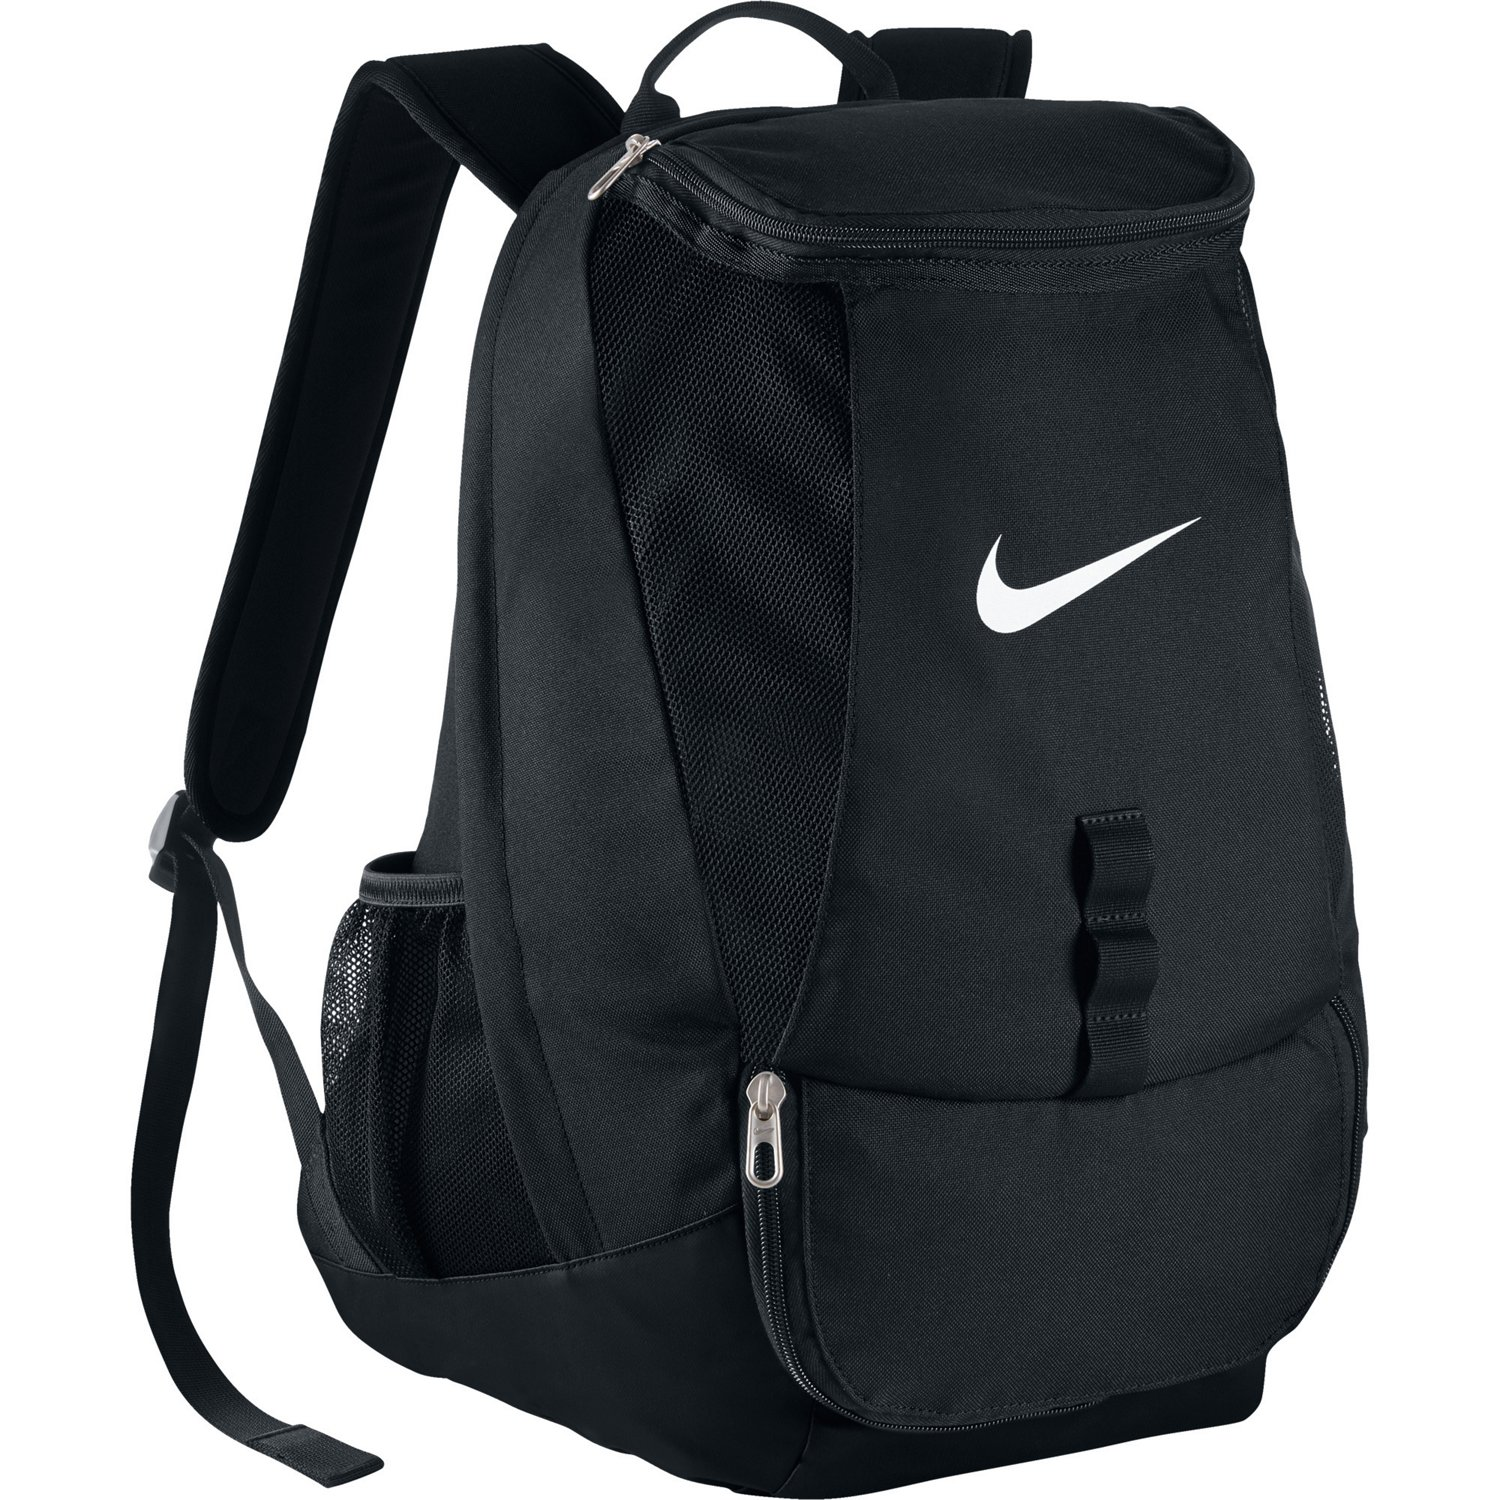 aa70c887c5 Display product reviews for Nike Men s Club Team Swoosh Soccer Backpack